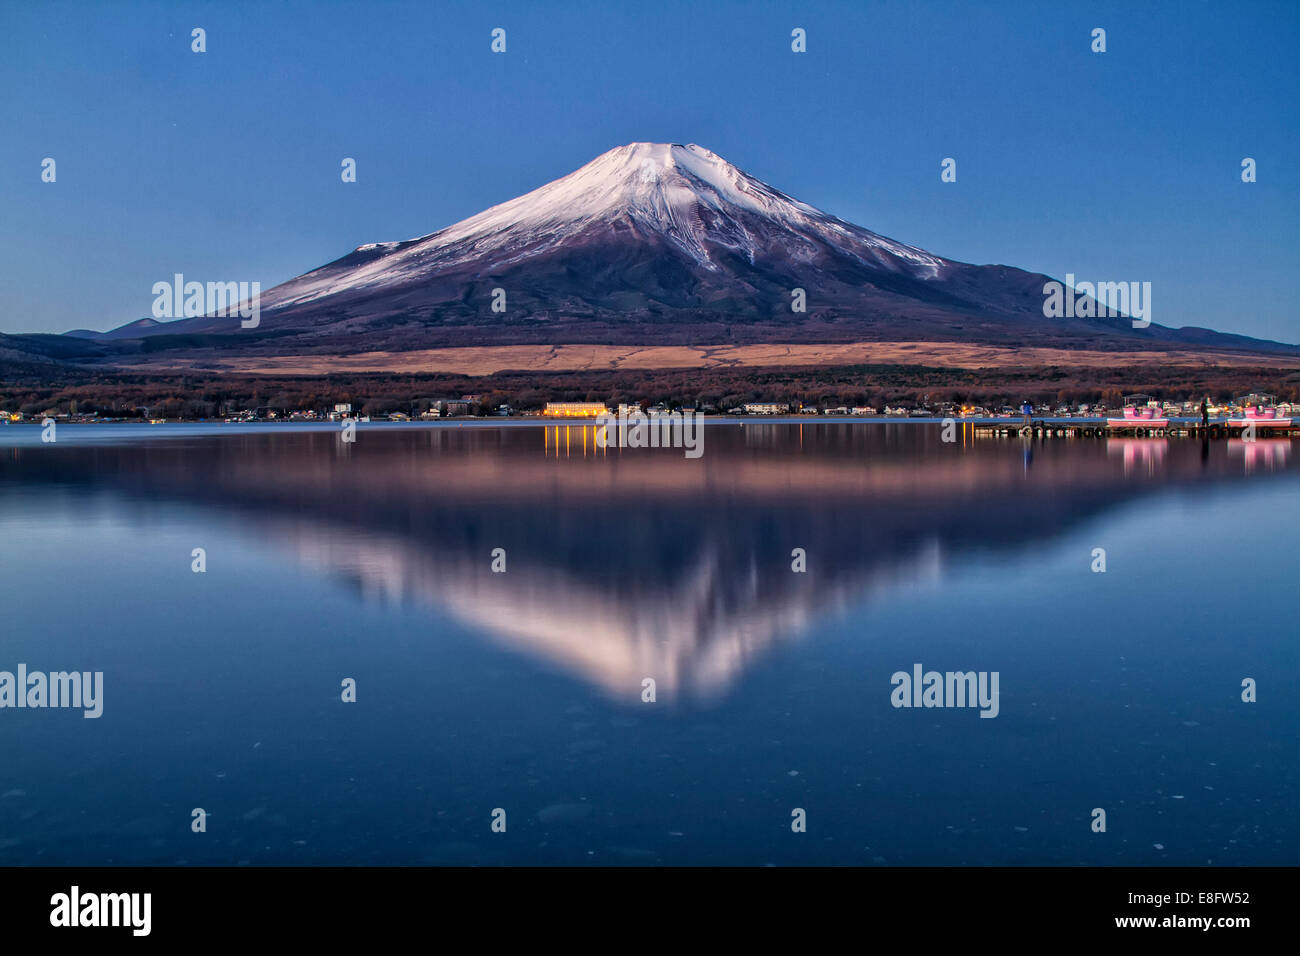 Japan, View of Mt Fuji - Stock Image